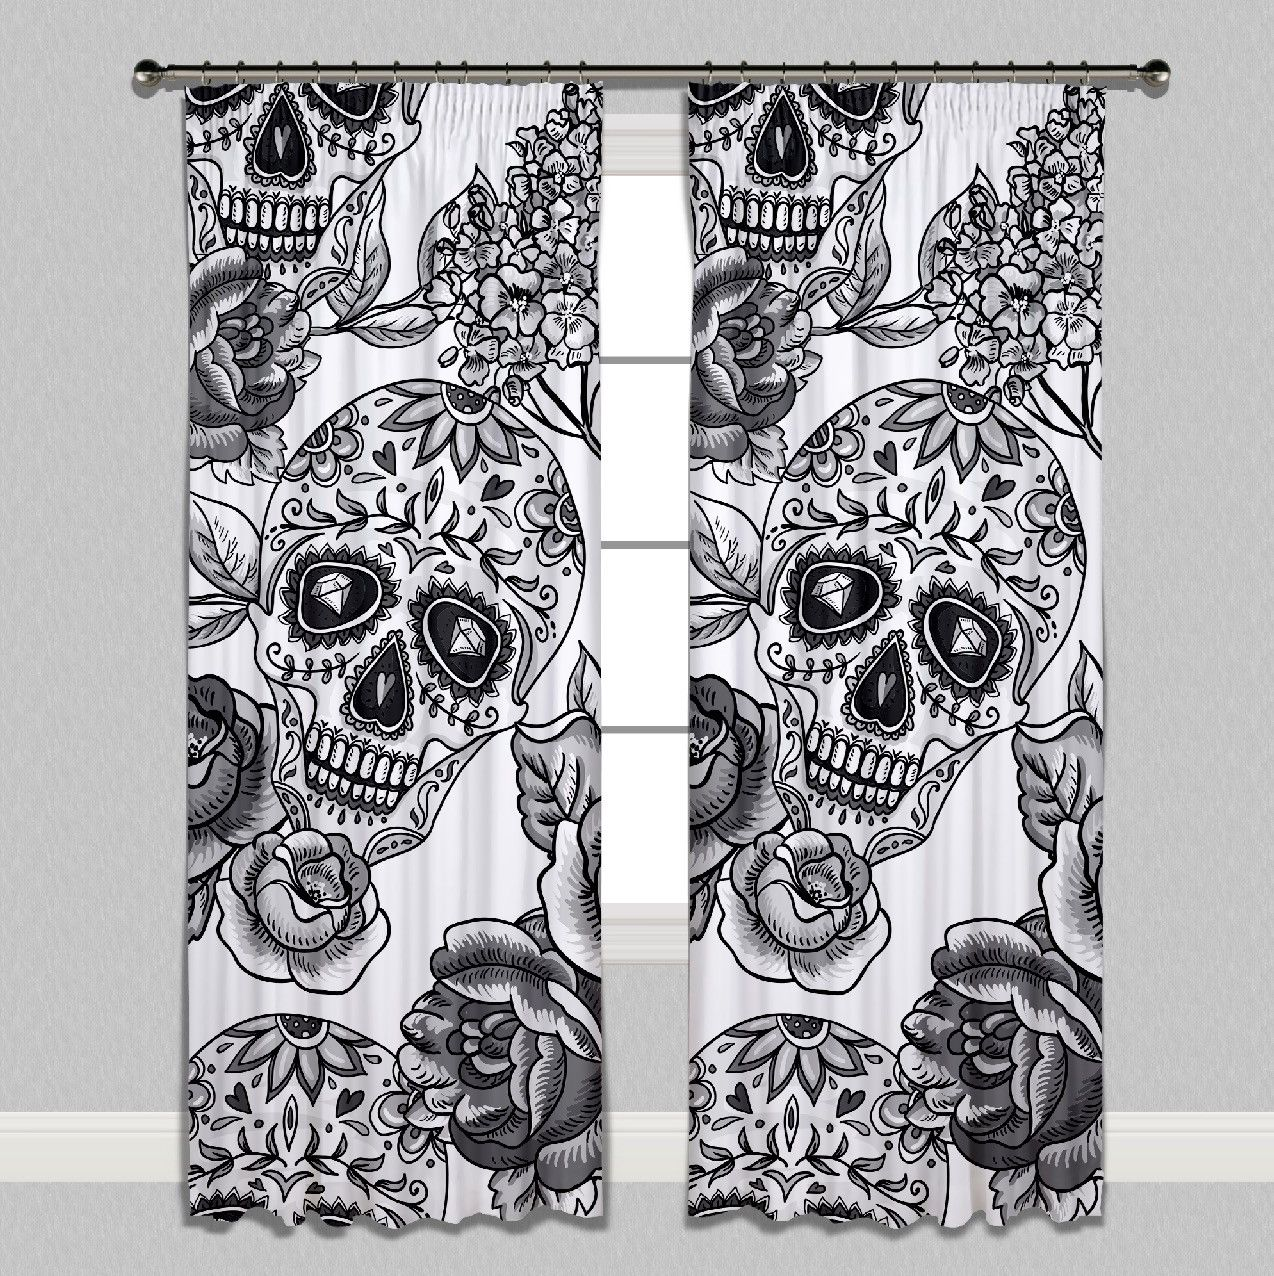 Signature White Sugar Skull Curtains or Sheers | Harry Bones | Pinterest